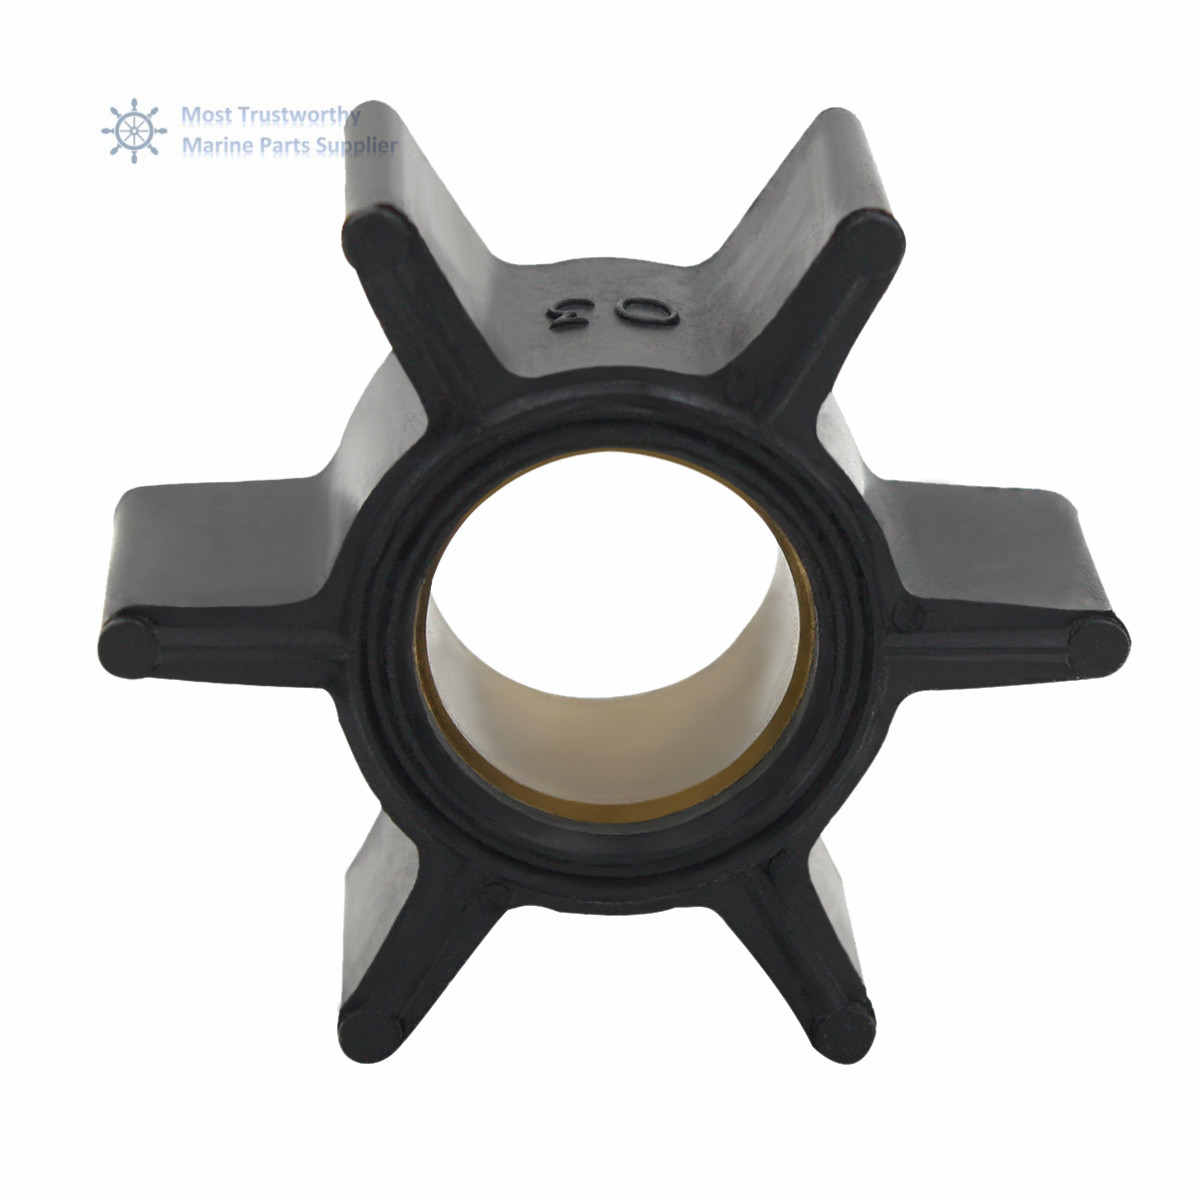 New Water Pump Impeller For Replacement Mercury 47-89981 47-65957 18-3039 9-45035 500310